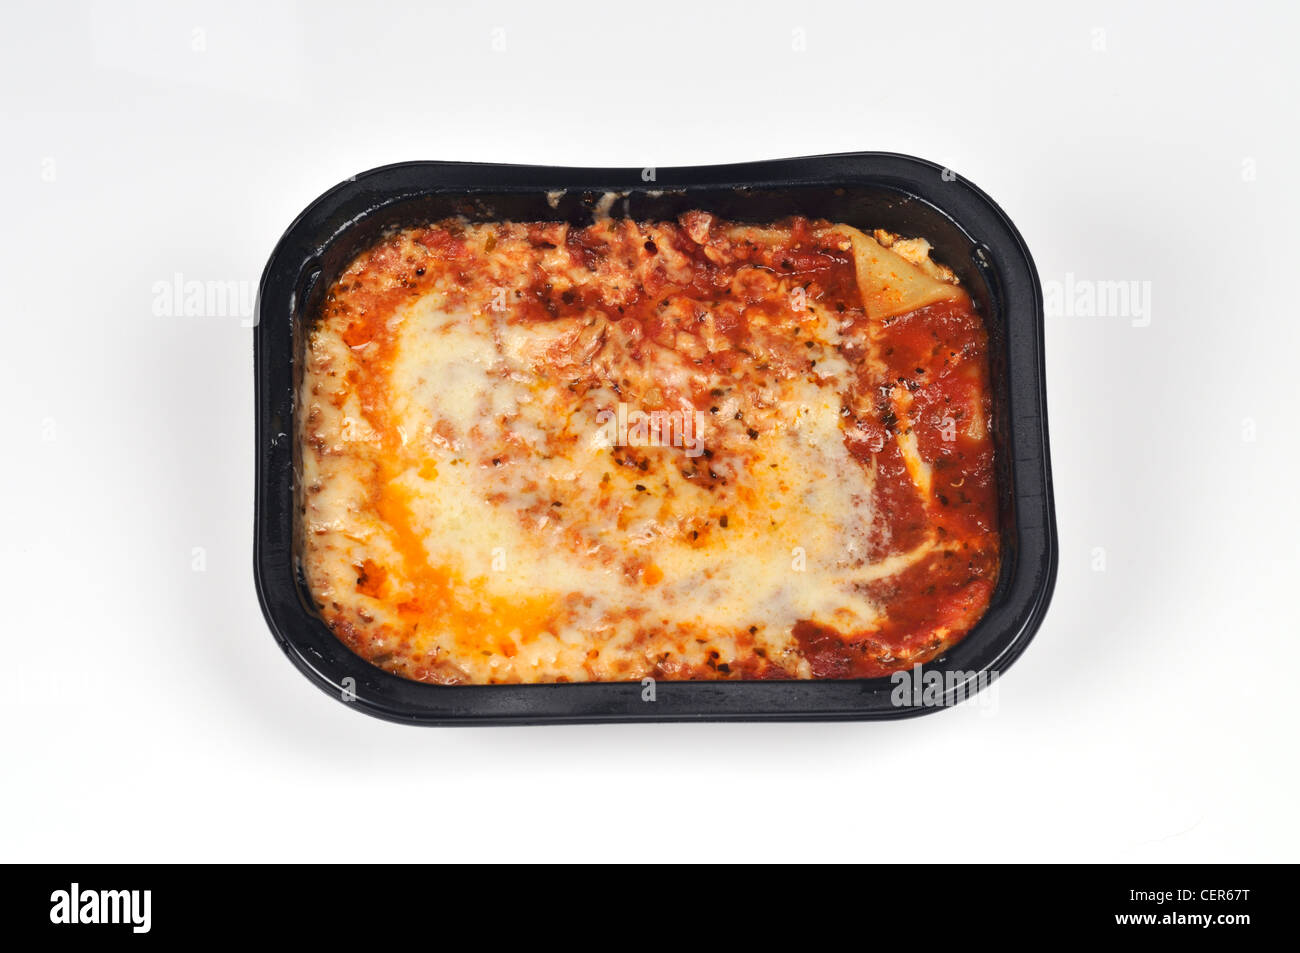 Cooked cheese lasagna ready meal in black plastic tray on white background cutout. - Stock Image